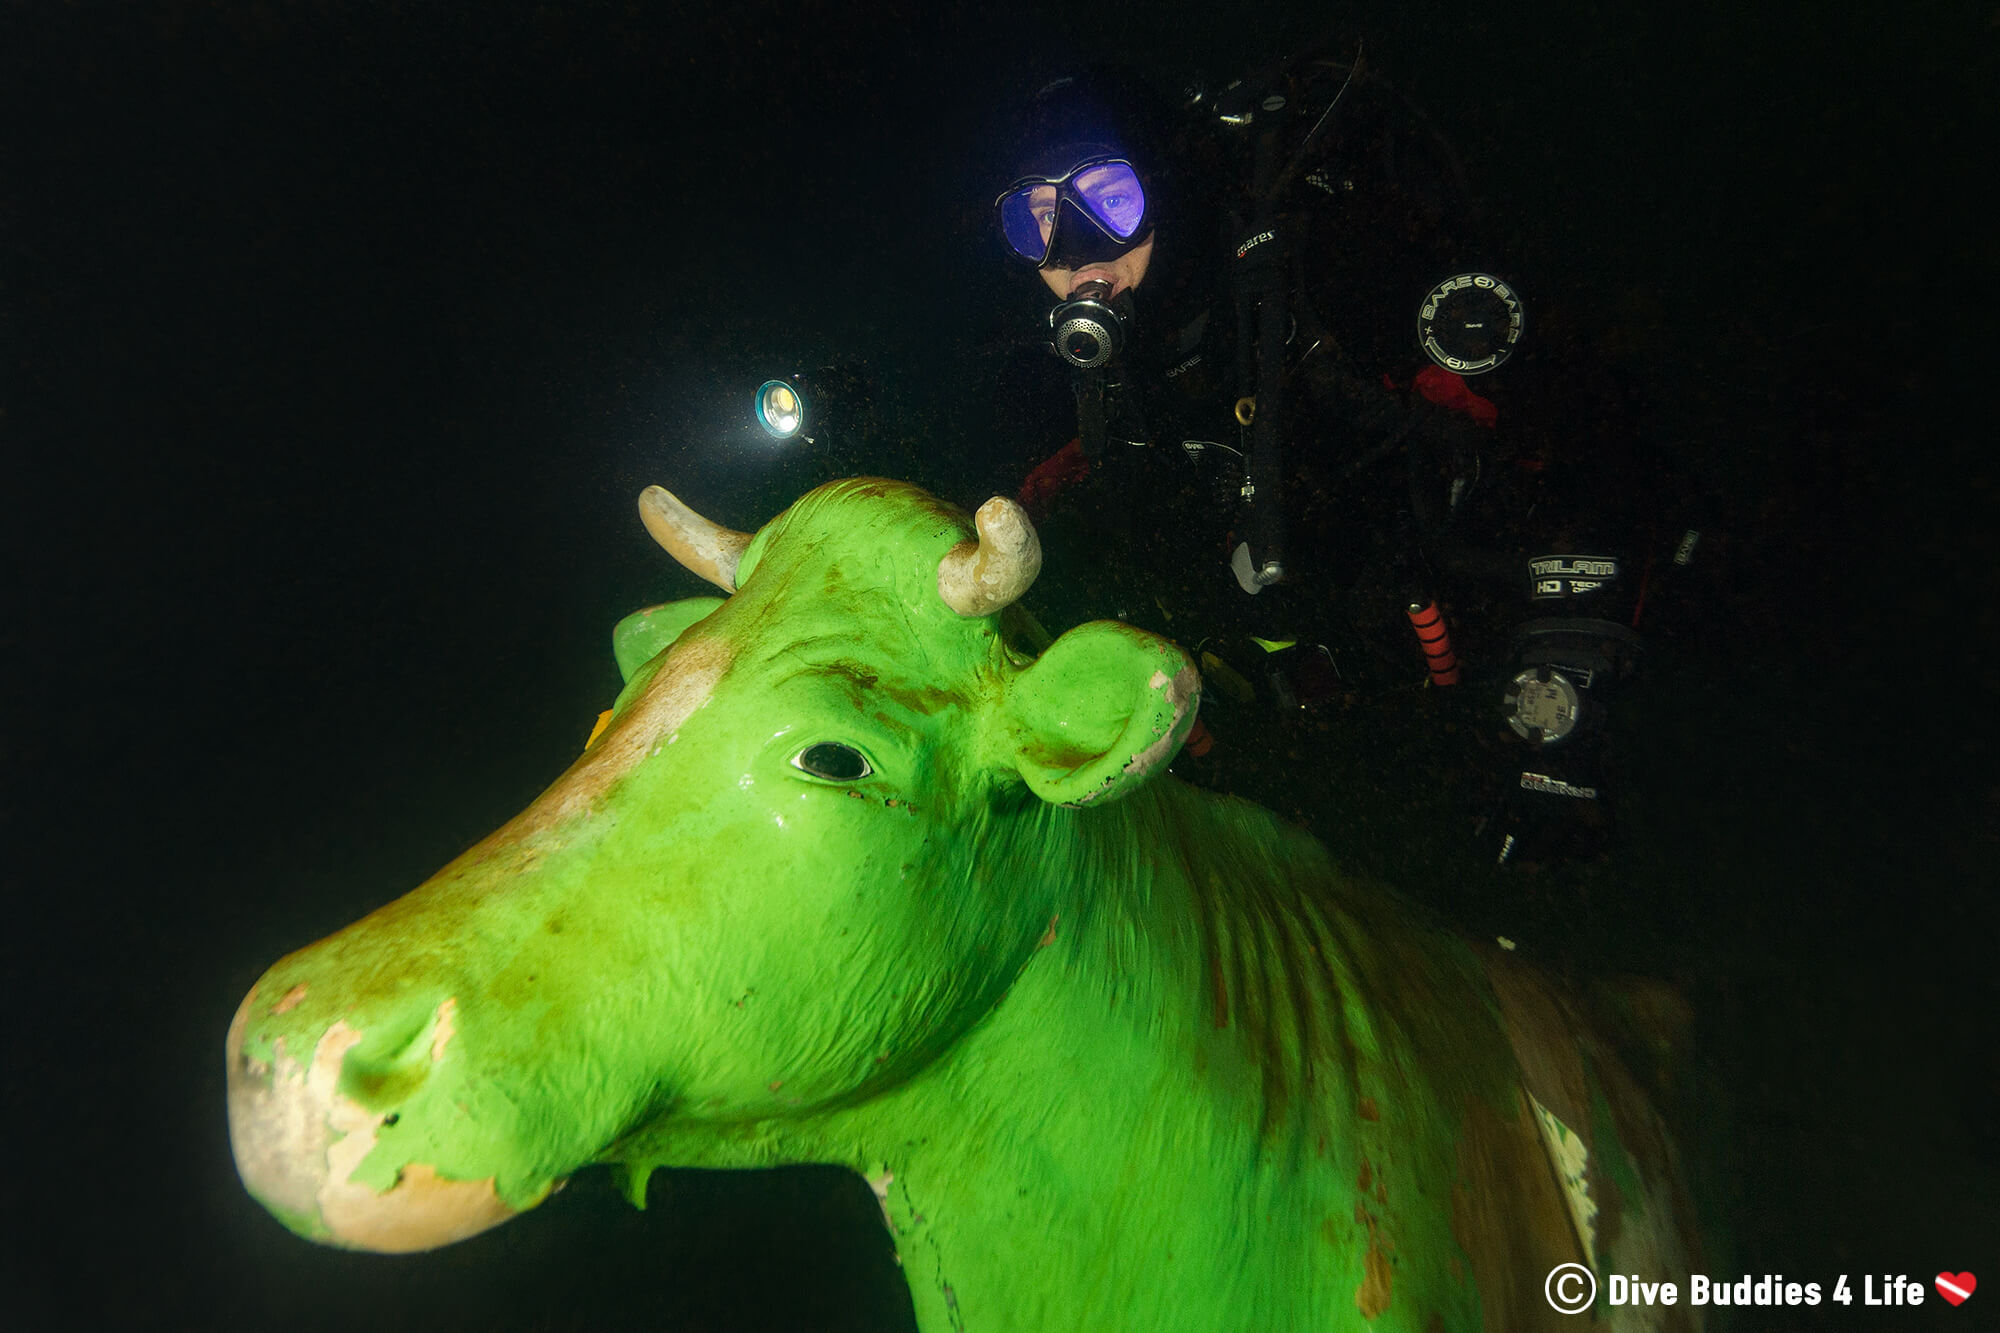 Scuba Joey And A Green Cow Underwater At The Gas O Meter In Germany, Europe